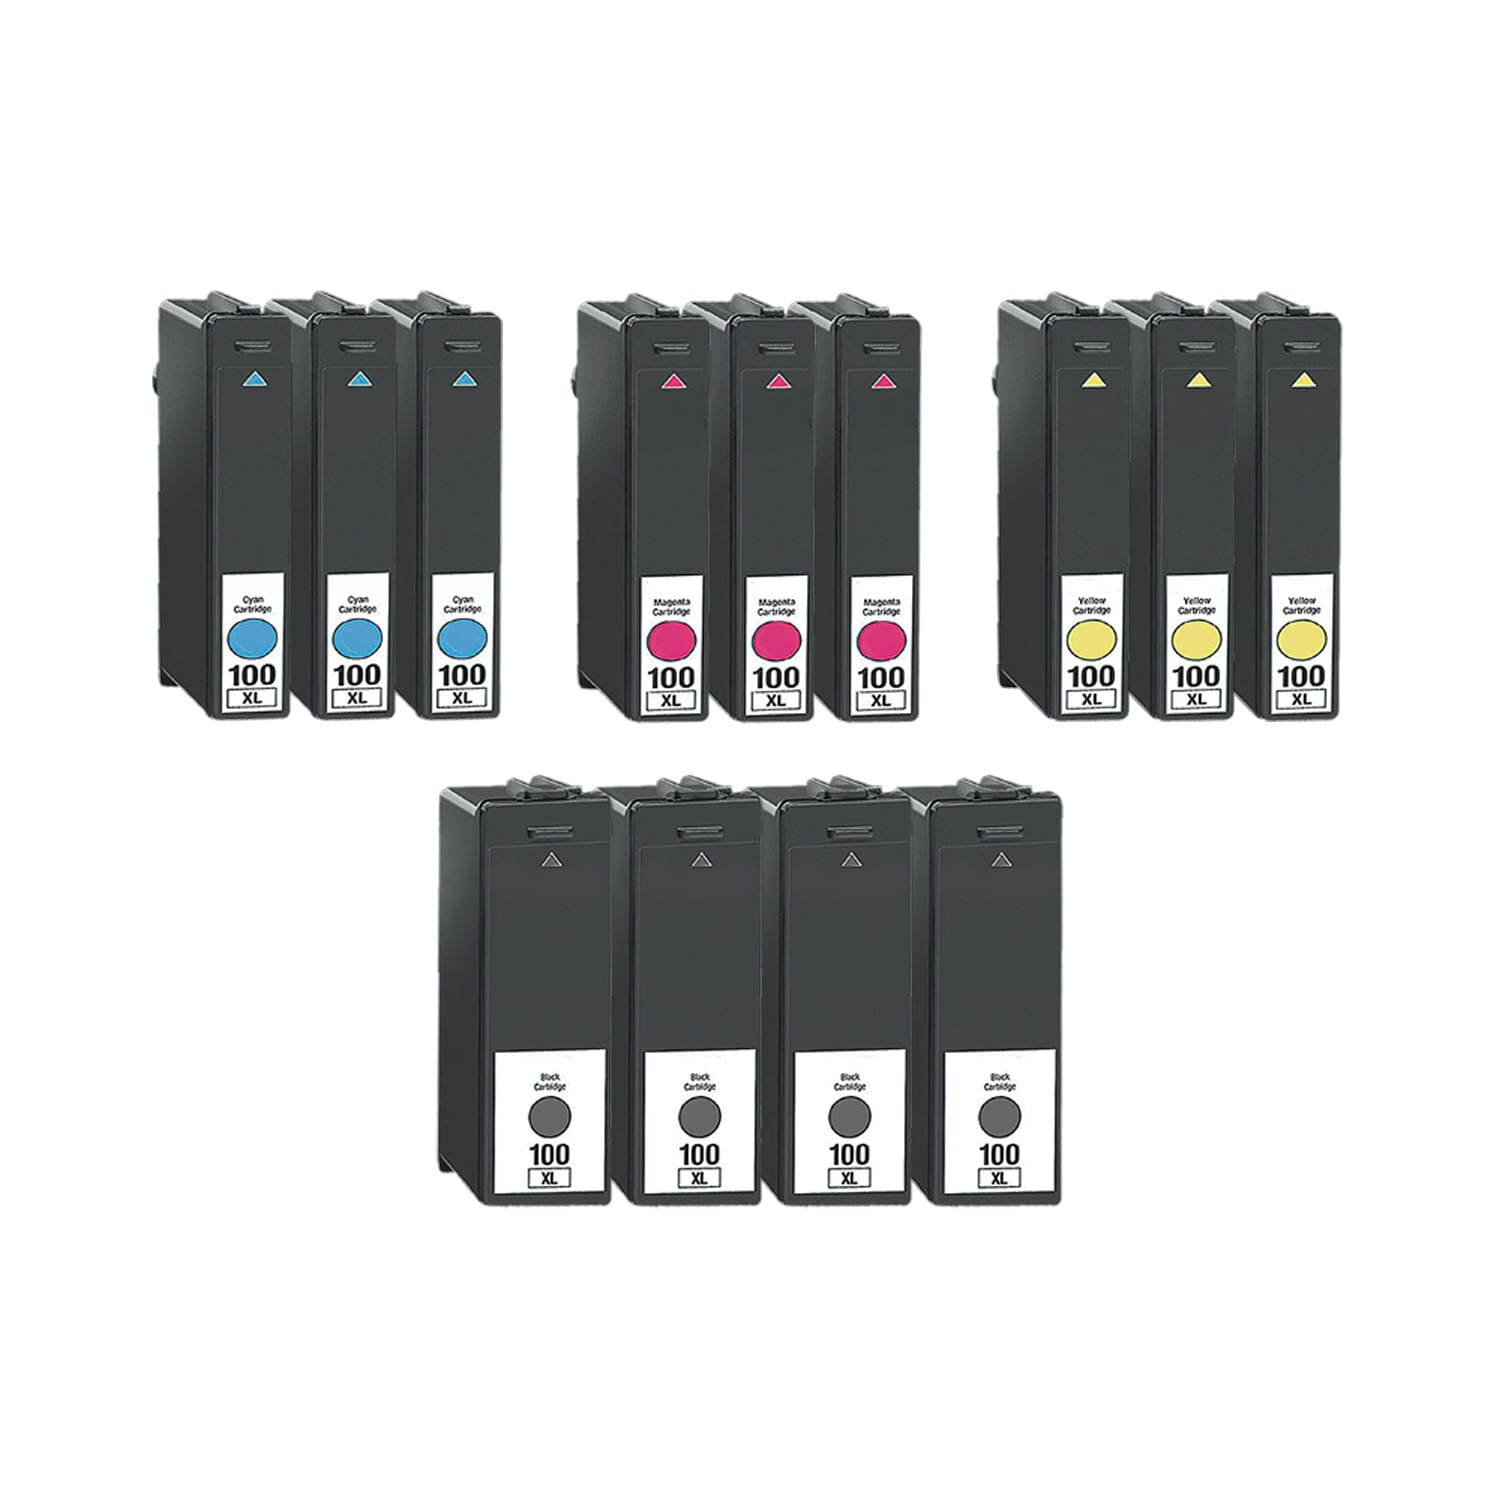 Compatible Lexmark 100XL Inkjet High Capacity Pack - 13 Cartridges